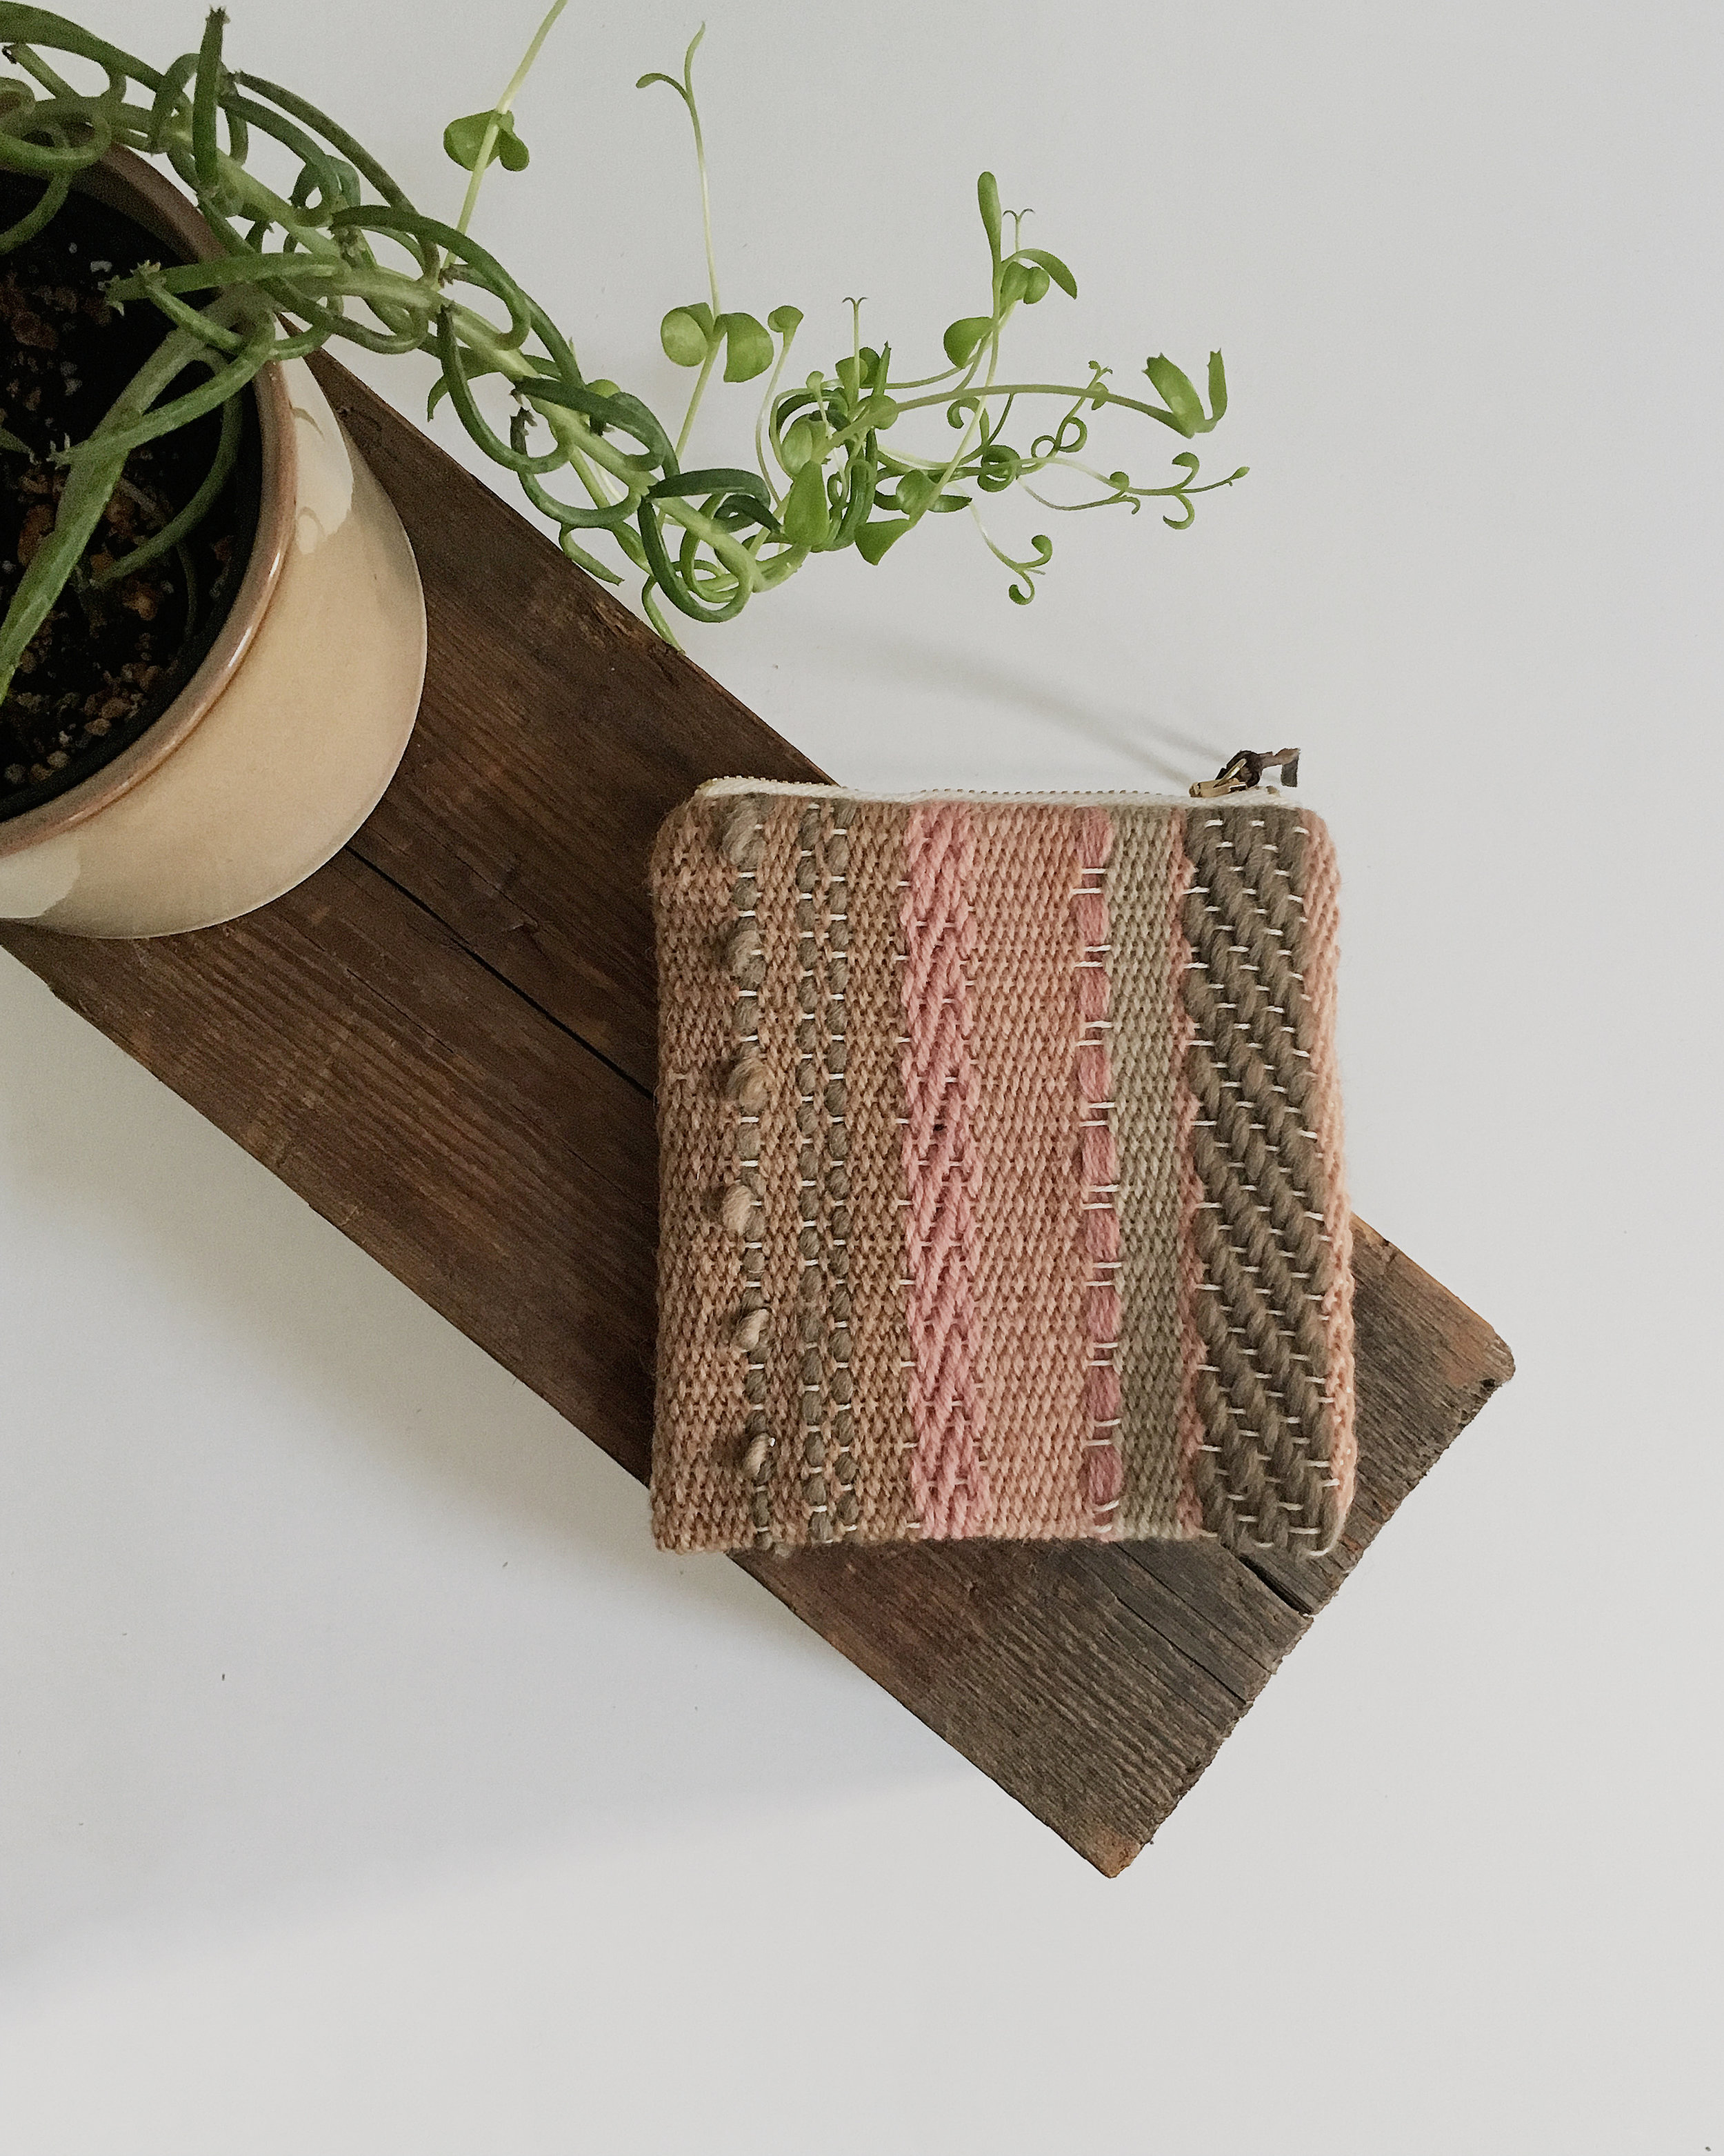 Handwoven pouches dyed with local plants and safely machine stitched - tutorial